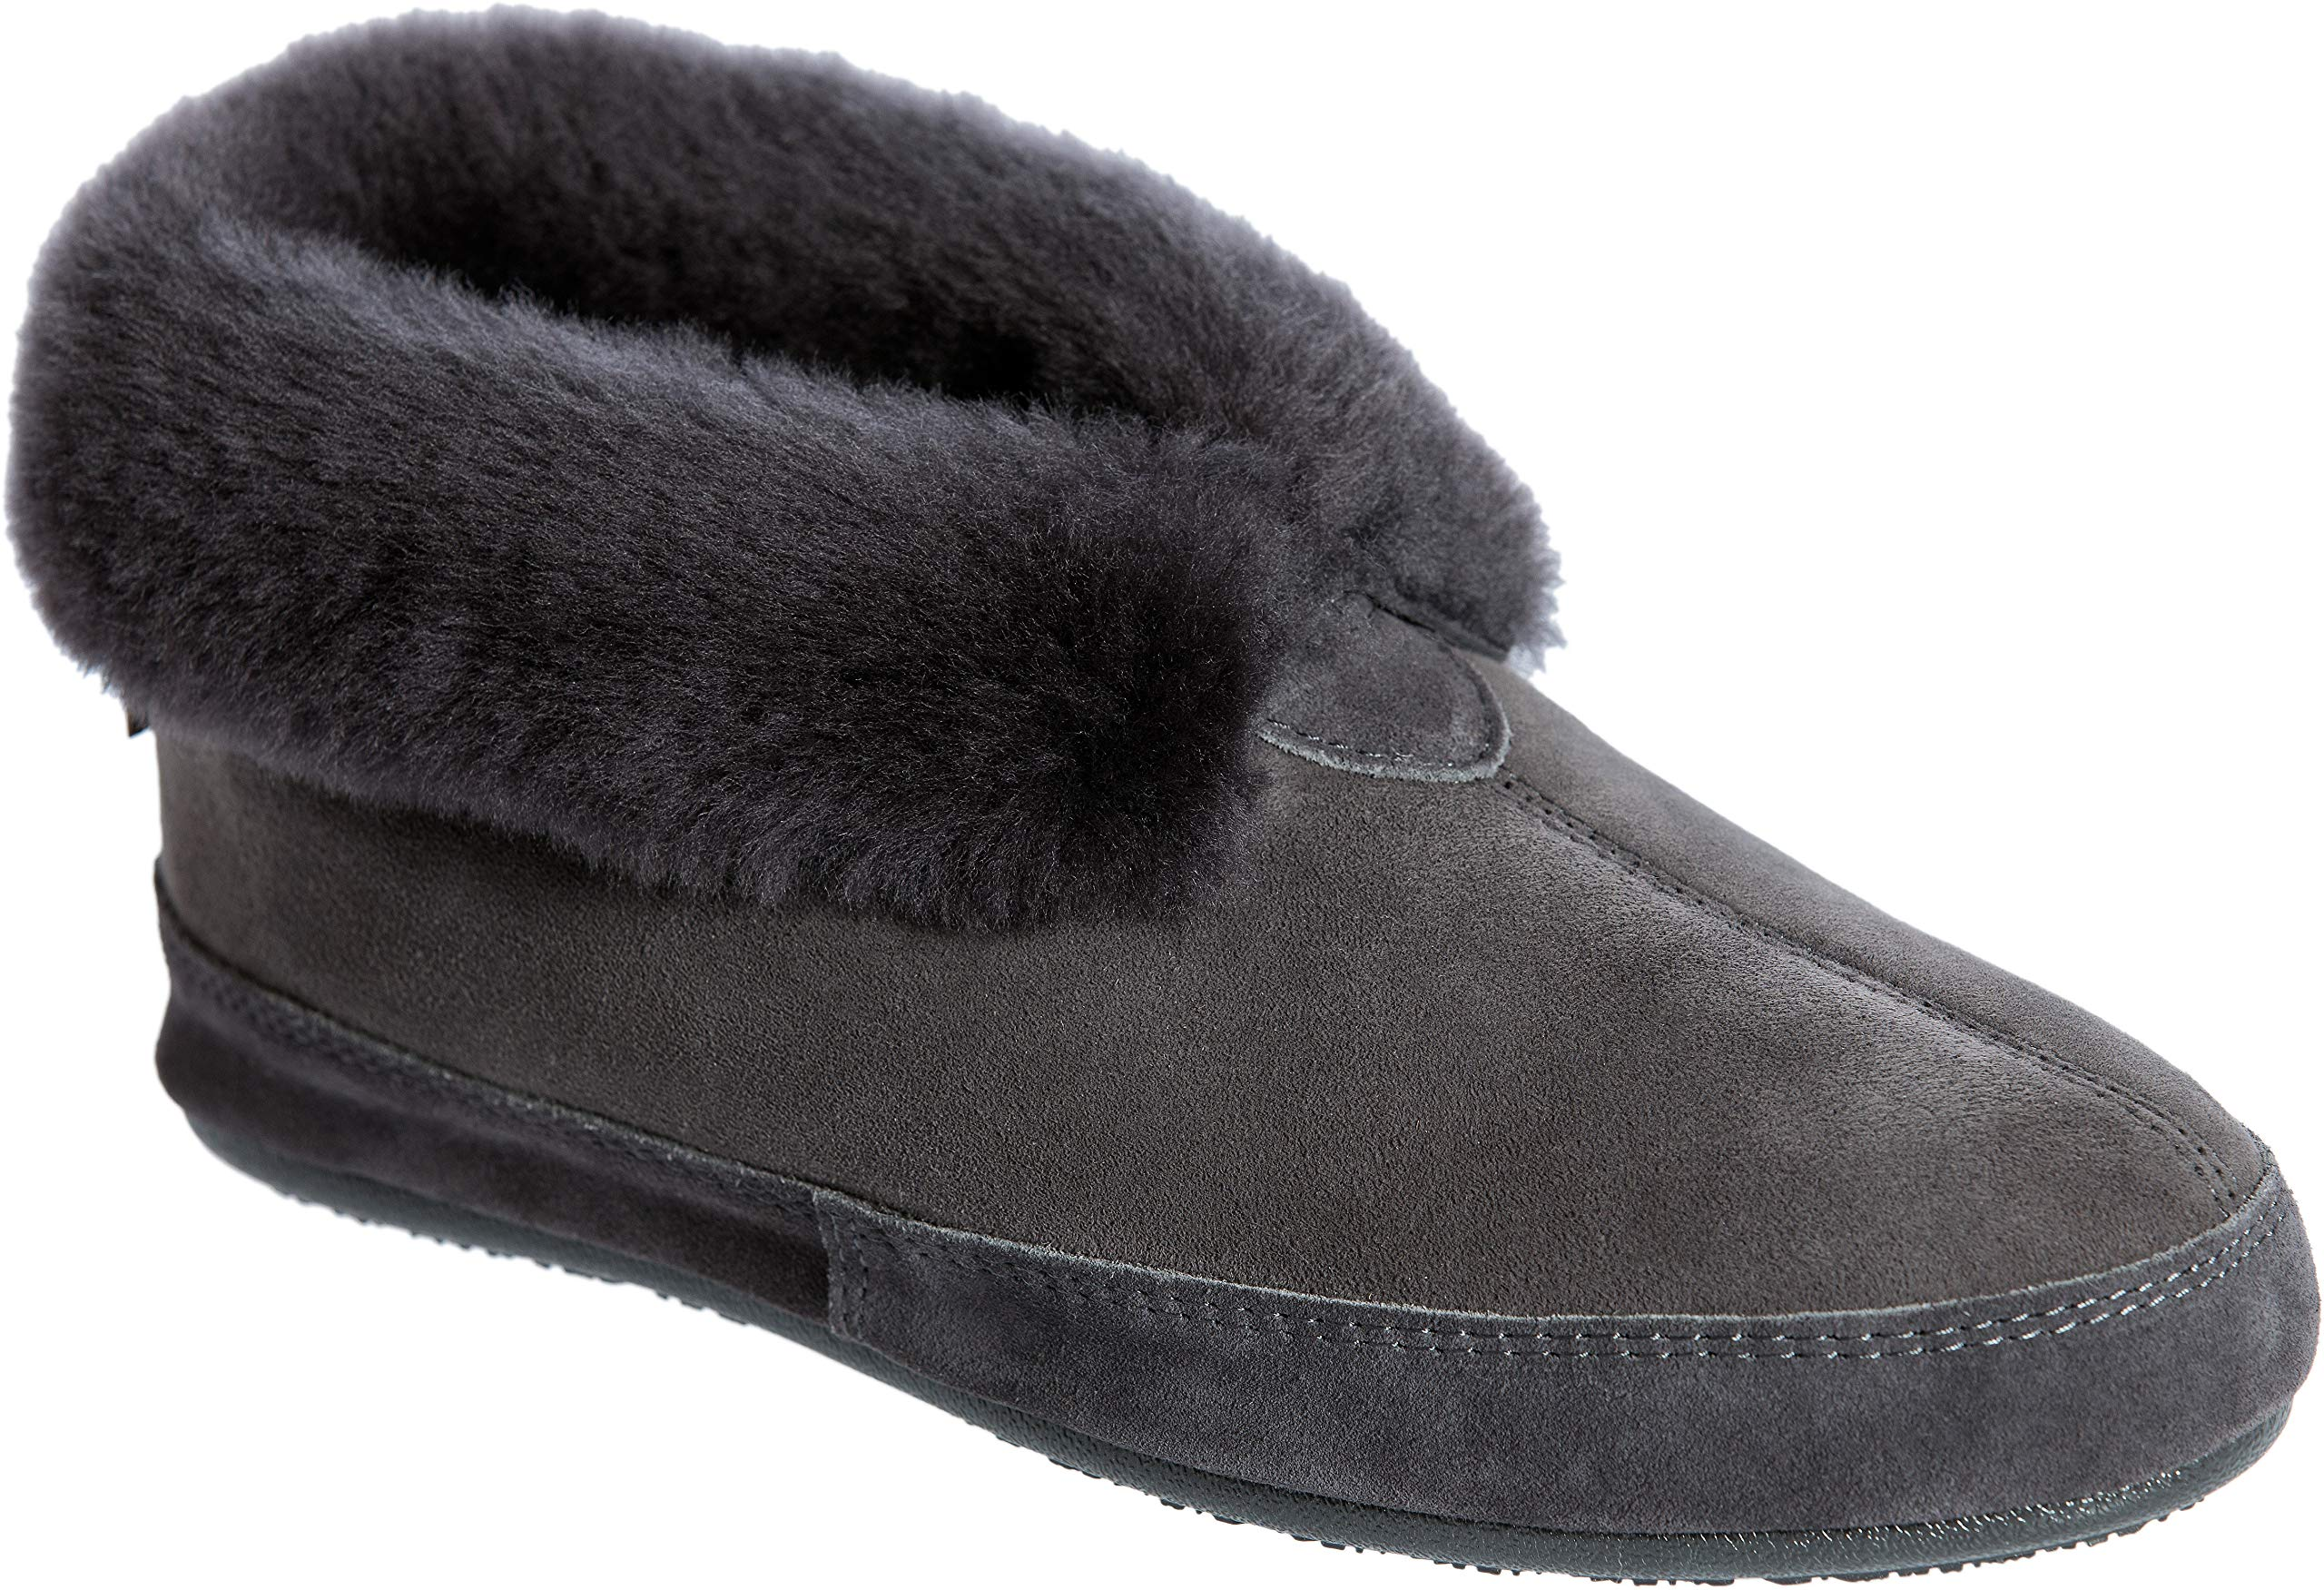 Men's Ethan Classic Australian Merino Sheepskin Slippers Charcoal by Overland Sheepskin Co